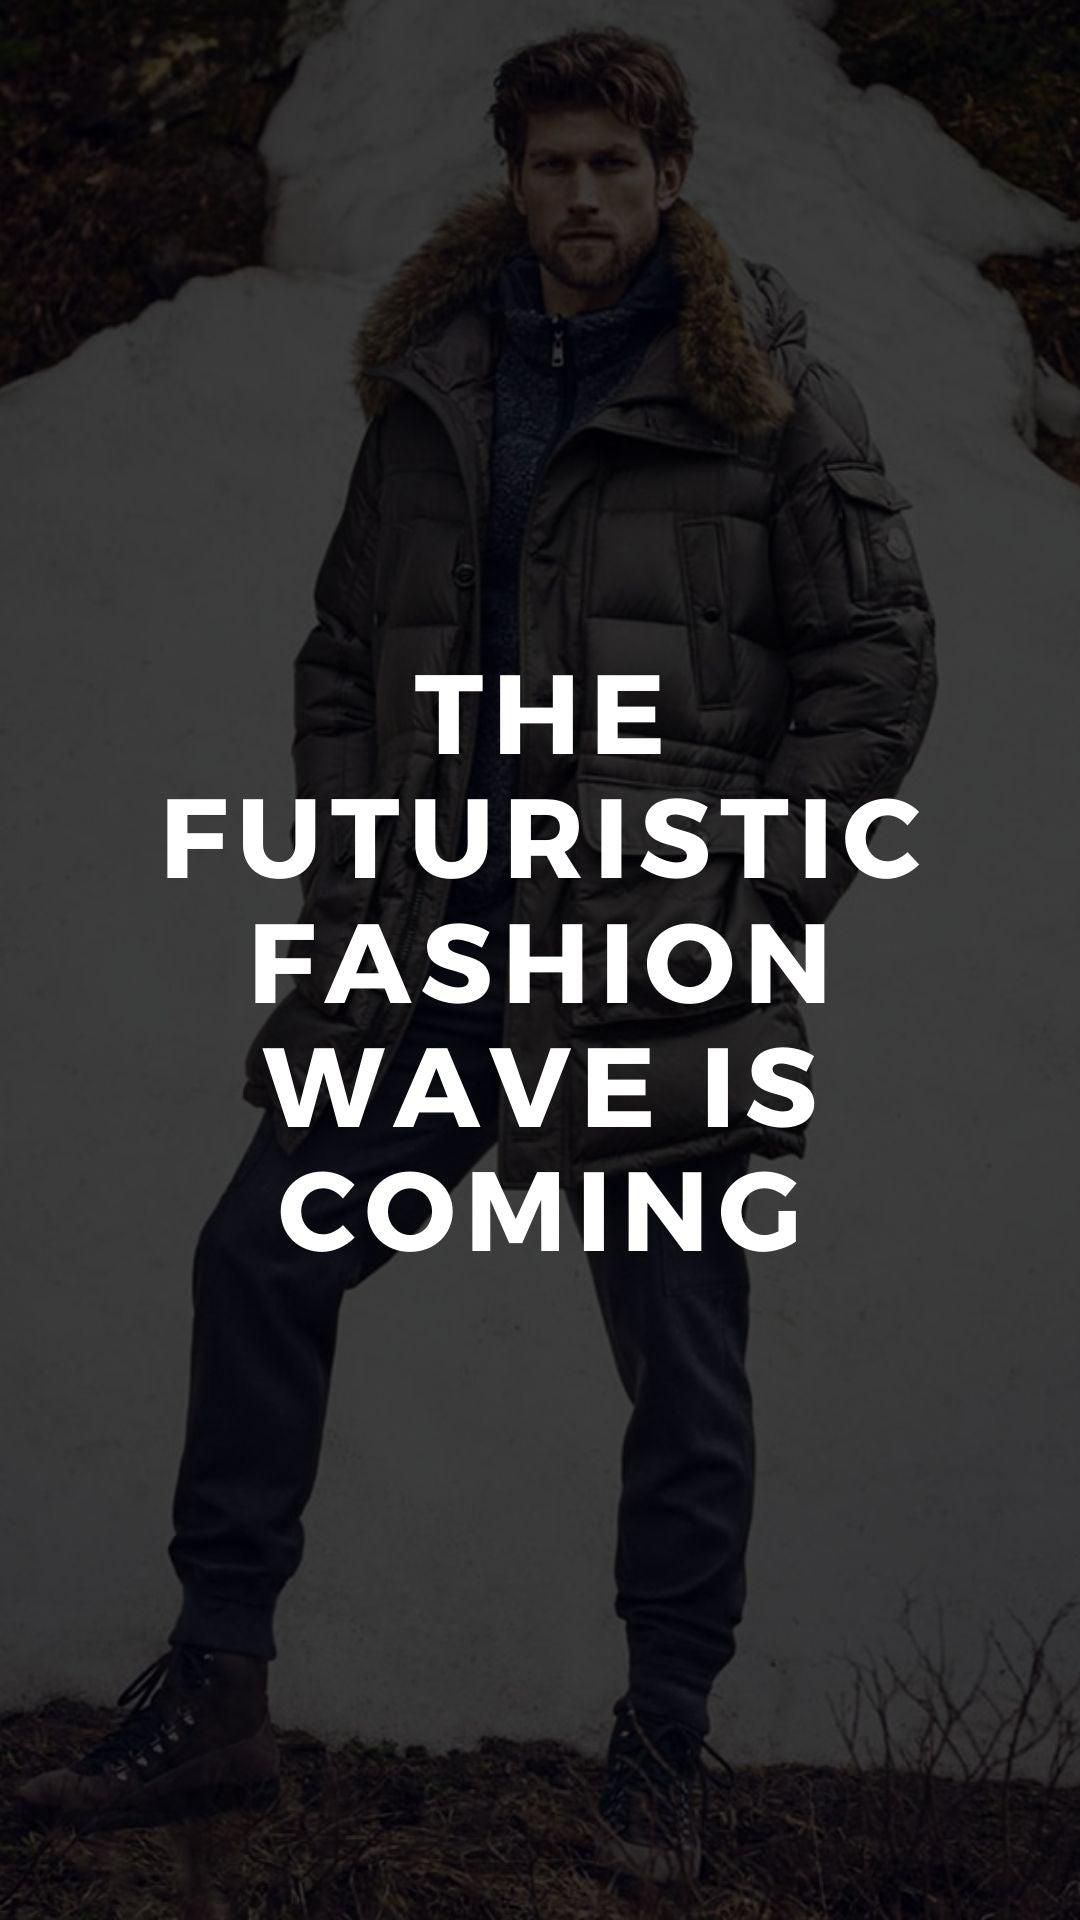 The Futuristic Fashion Wave Is Coming